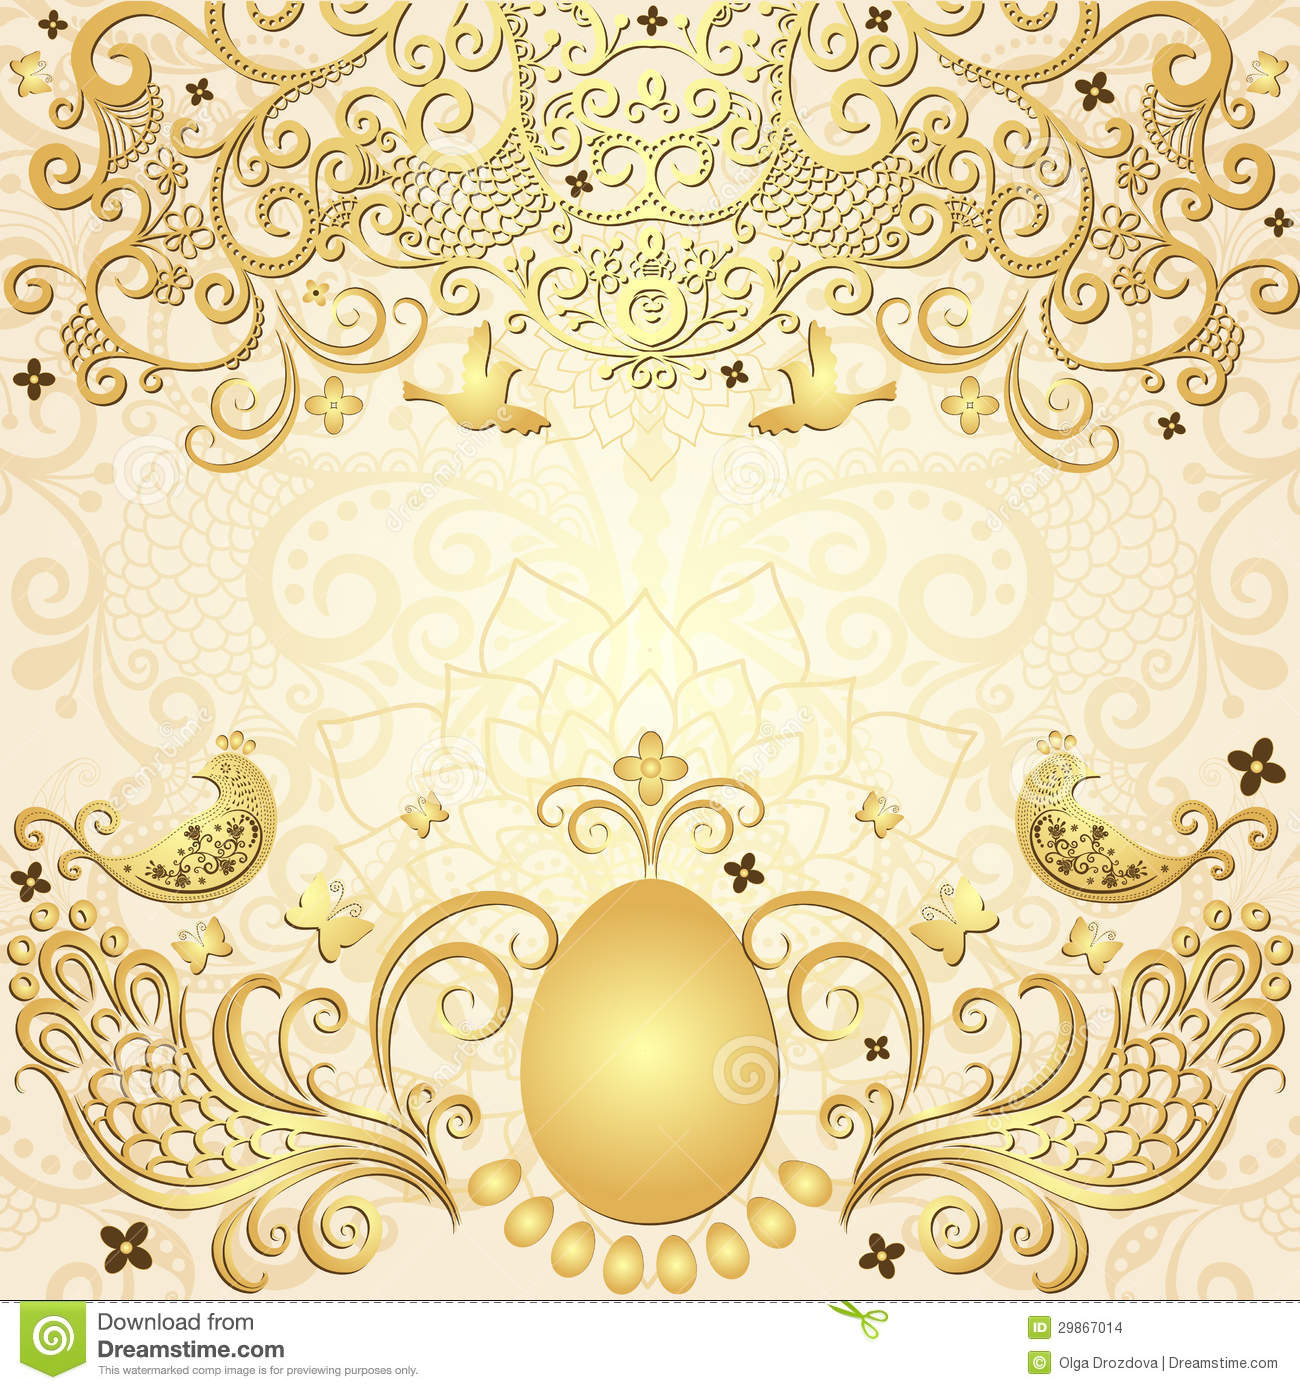 aa34780ef0d Gold easter vintage frame stock vector. Illustration of design ...